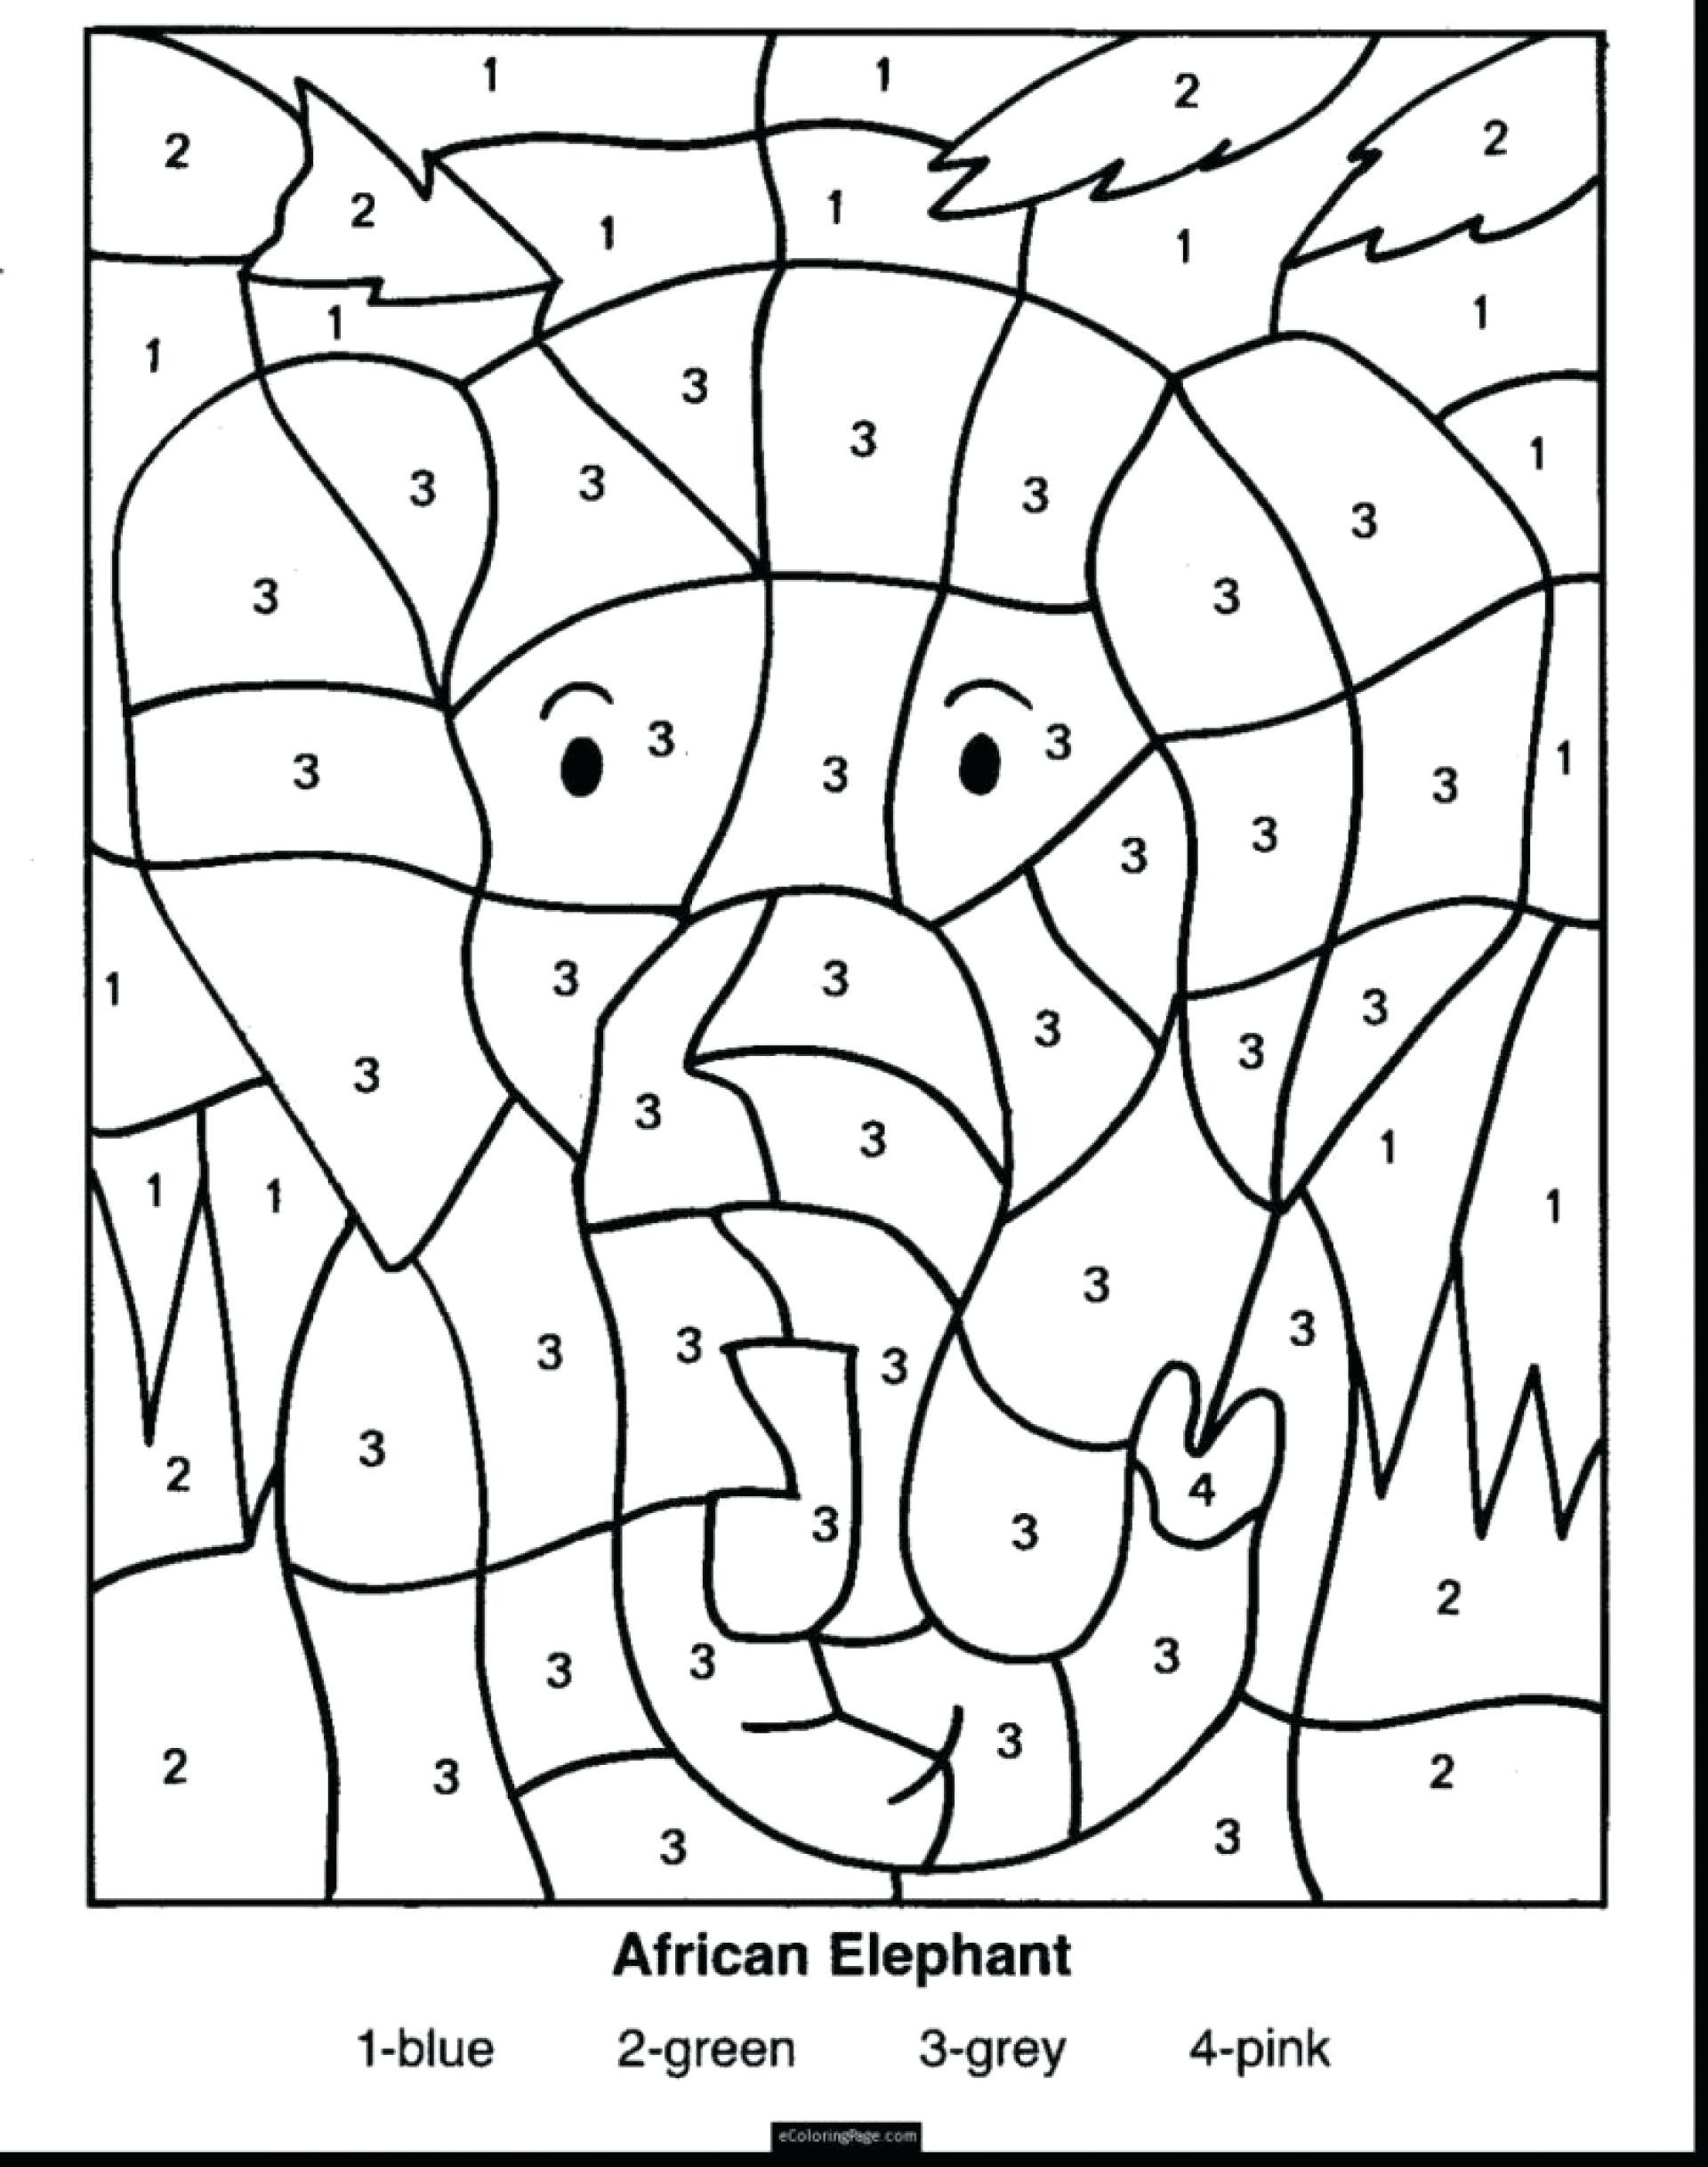 Coloring Worksheets for 3rd Grade Coloring Pages Free Second Grade Math Third Problems Line